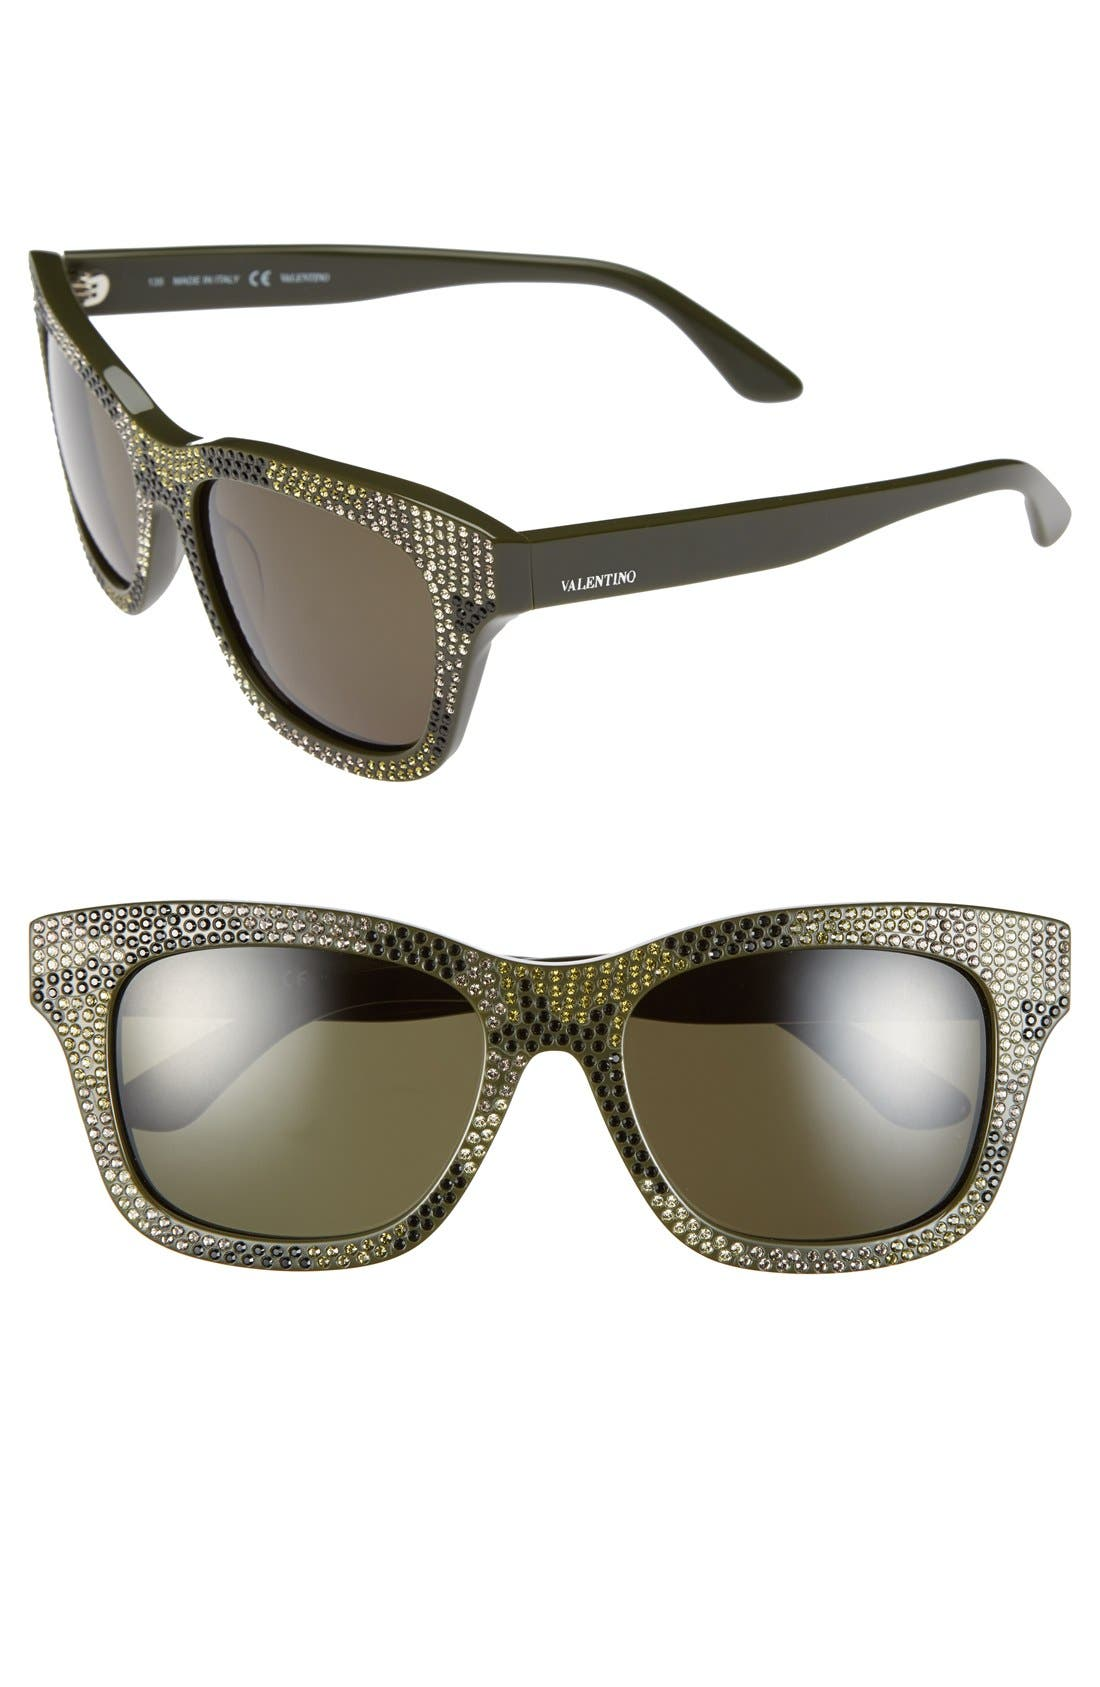 Alternate Image 1 Selected - Valentino 'Crystal Camo' 53mm Sunglasses